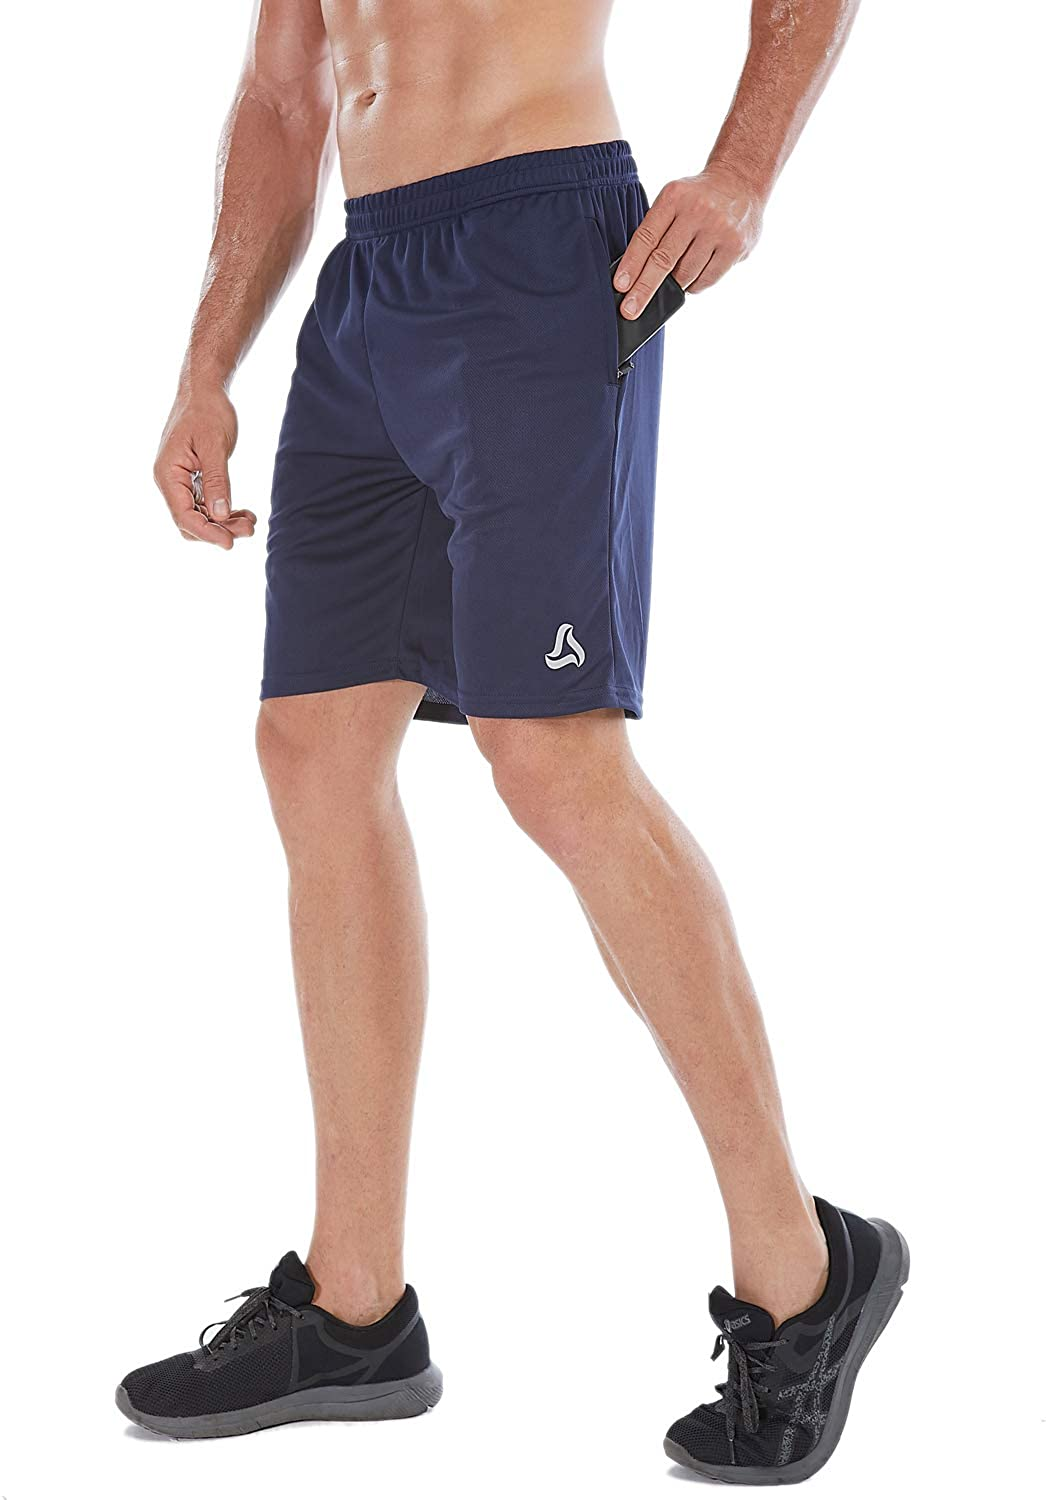 SILKWORLD Mens 7 Athletic Running Shorts with/Zipper Pockets(Pack of 3)